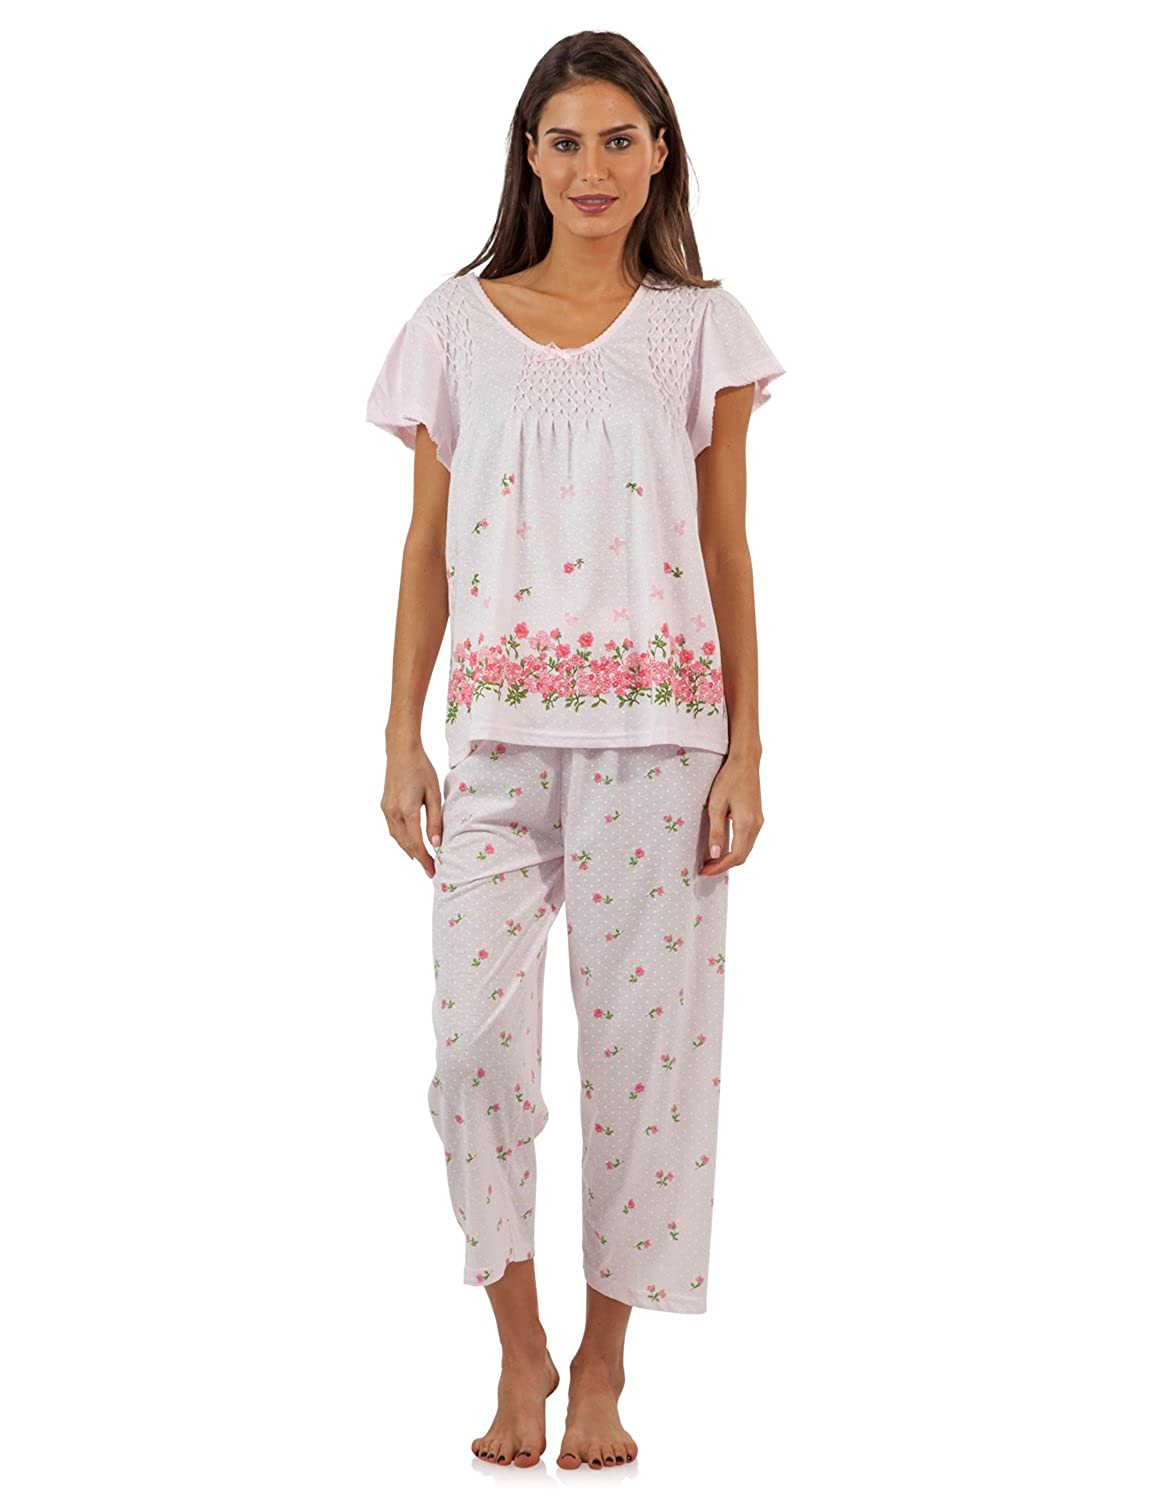 Casual Nights Women's Short Sleeve Floral Border Capri Pajama Set Printed 2 Piece Pj's Set